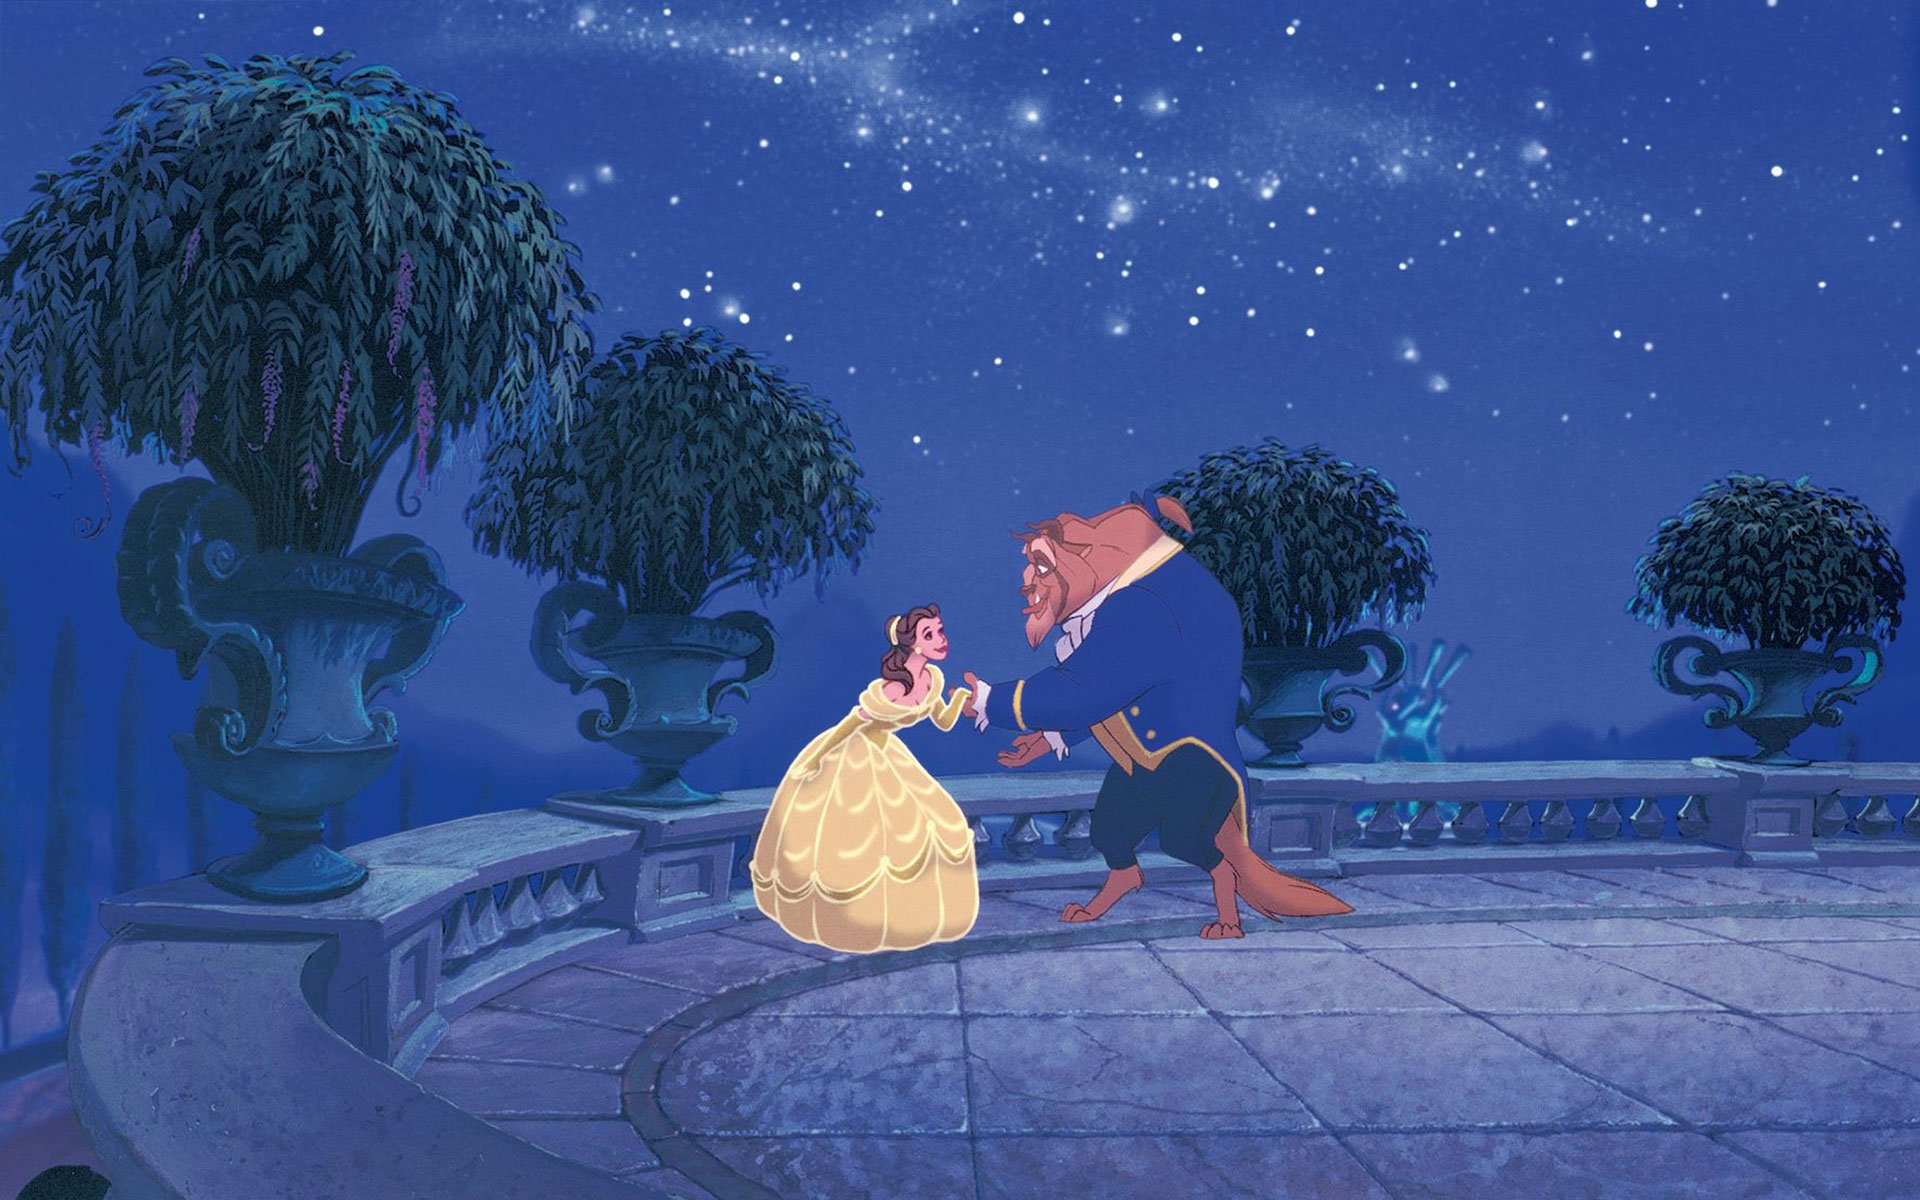 Beauty And The Beast Wallpaper Disney Beauty And The Beast